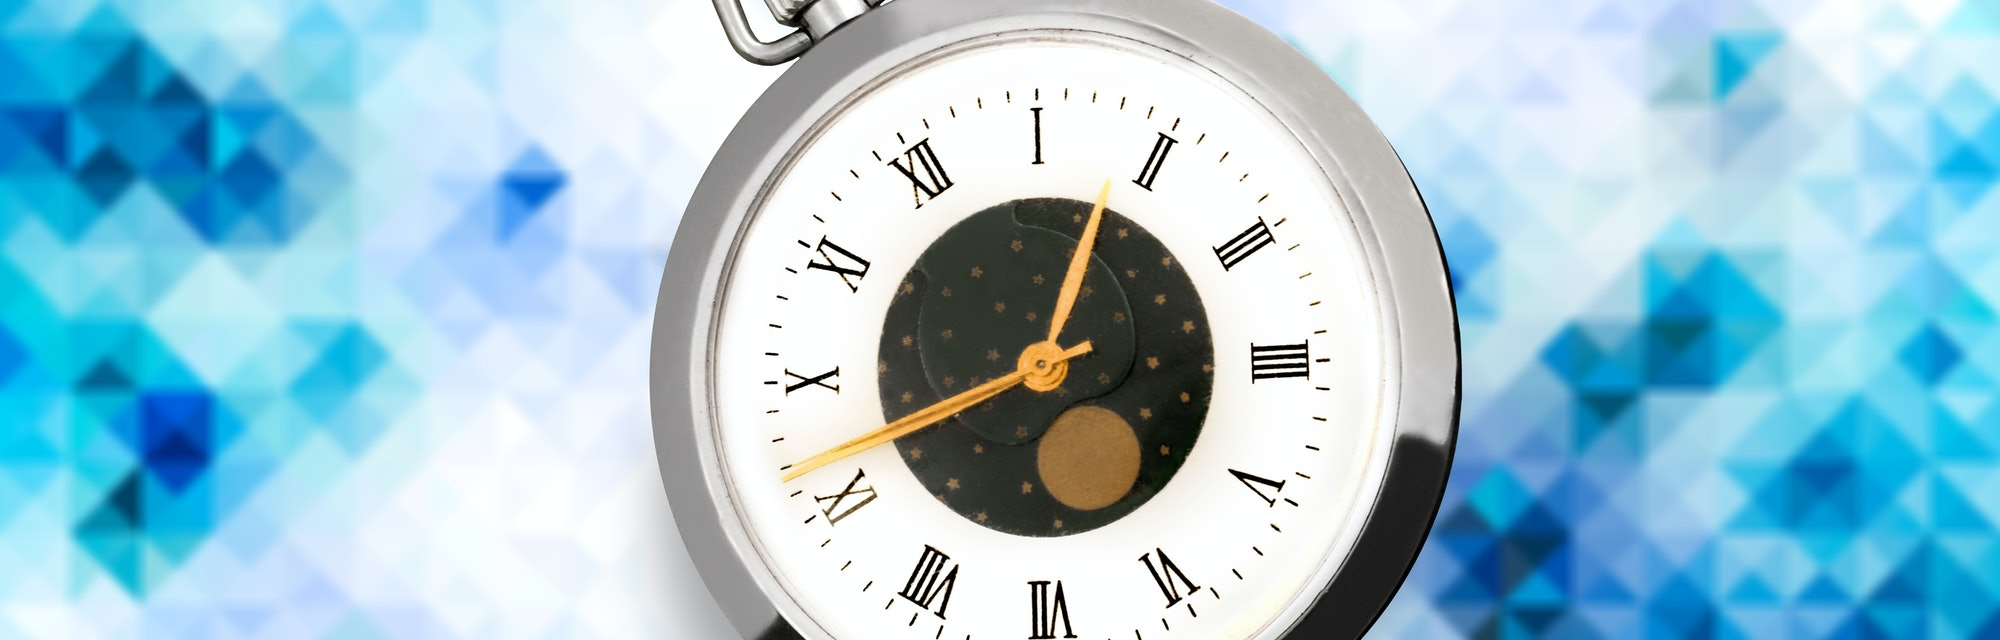 The classic silver clock on abstract background